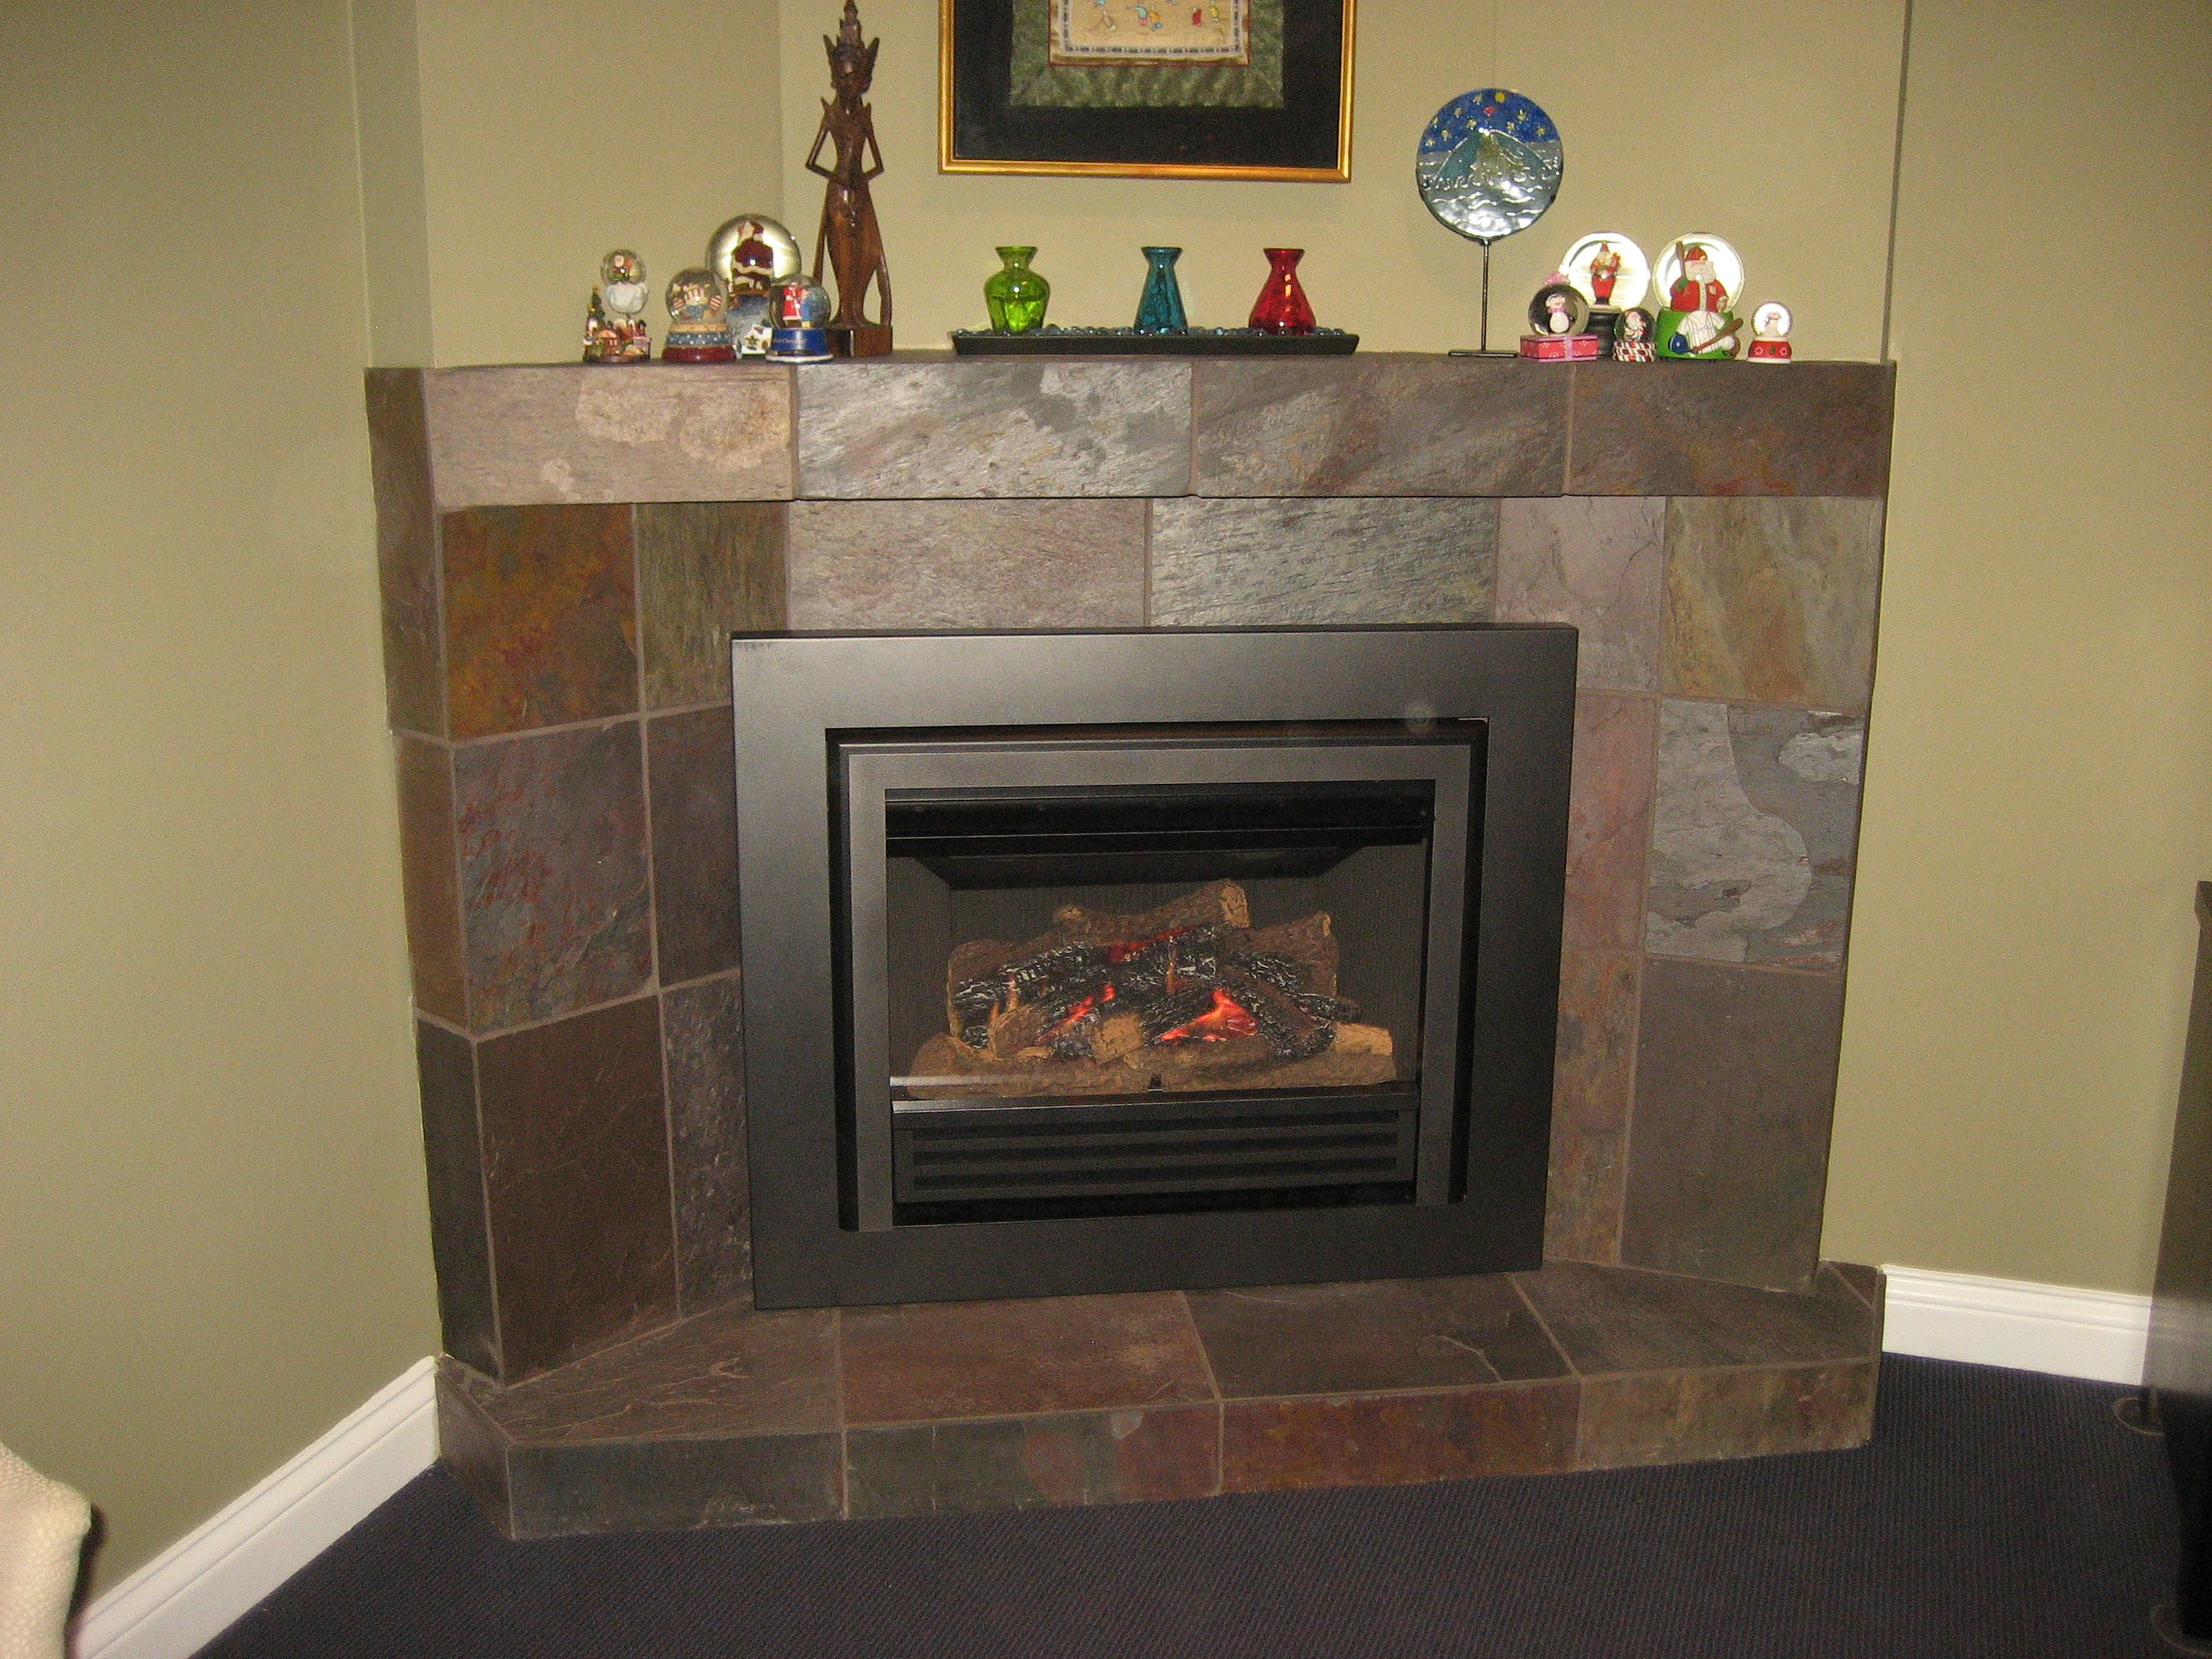 consumer sale gas safety fireplace instructions installation for insert reviews melbourne with reports blower inserts ventless